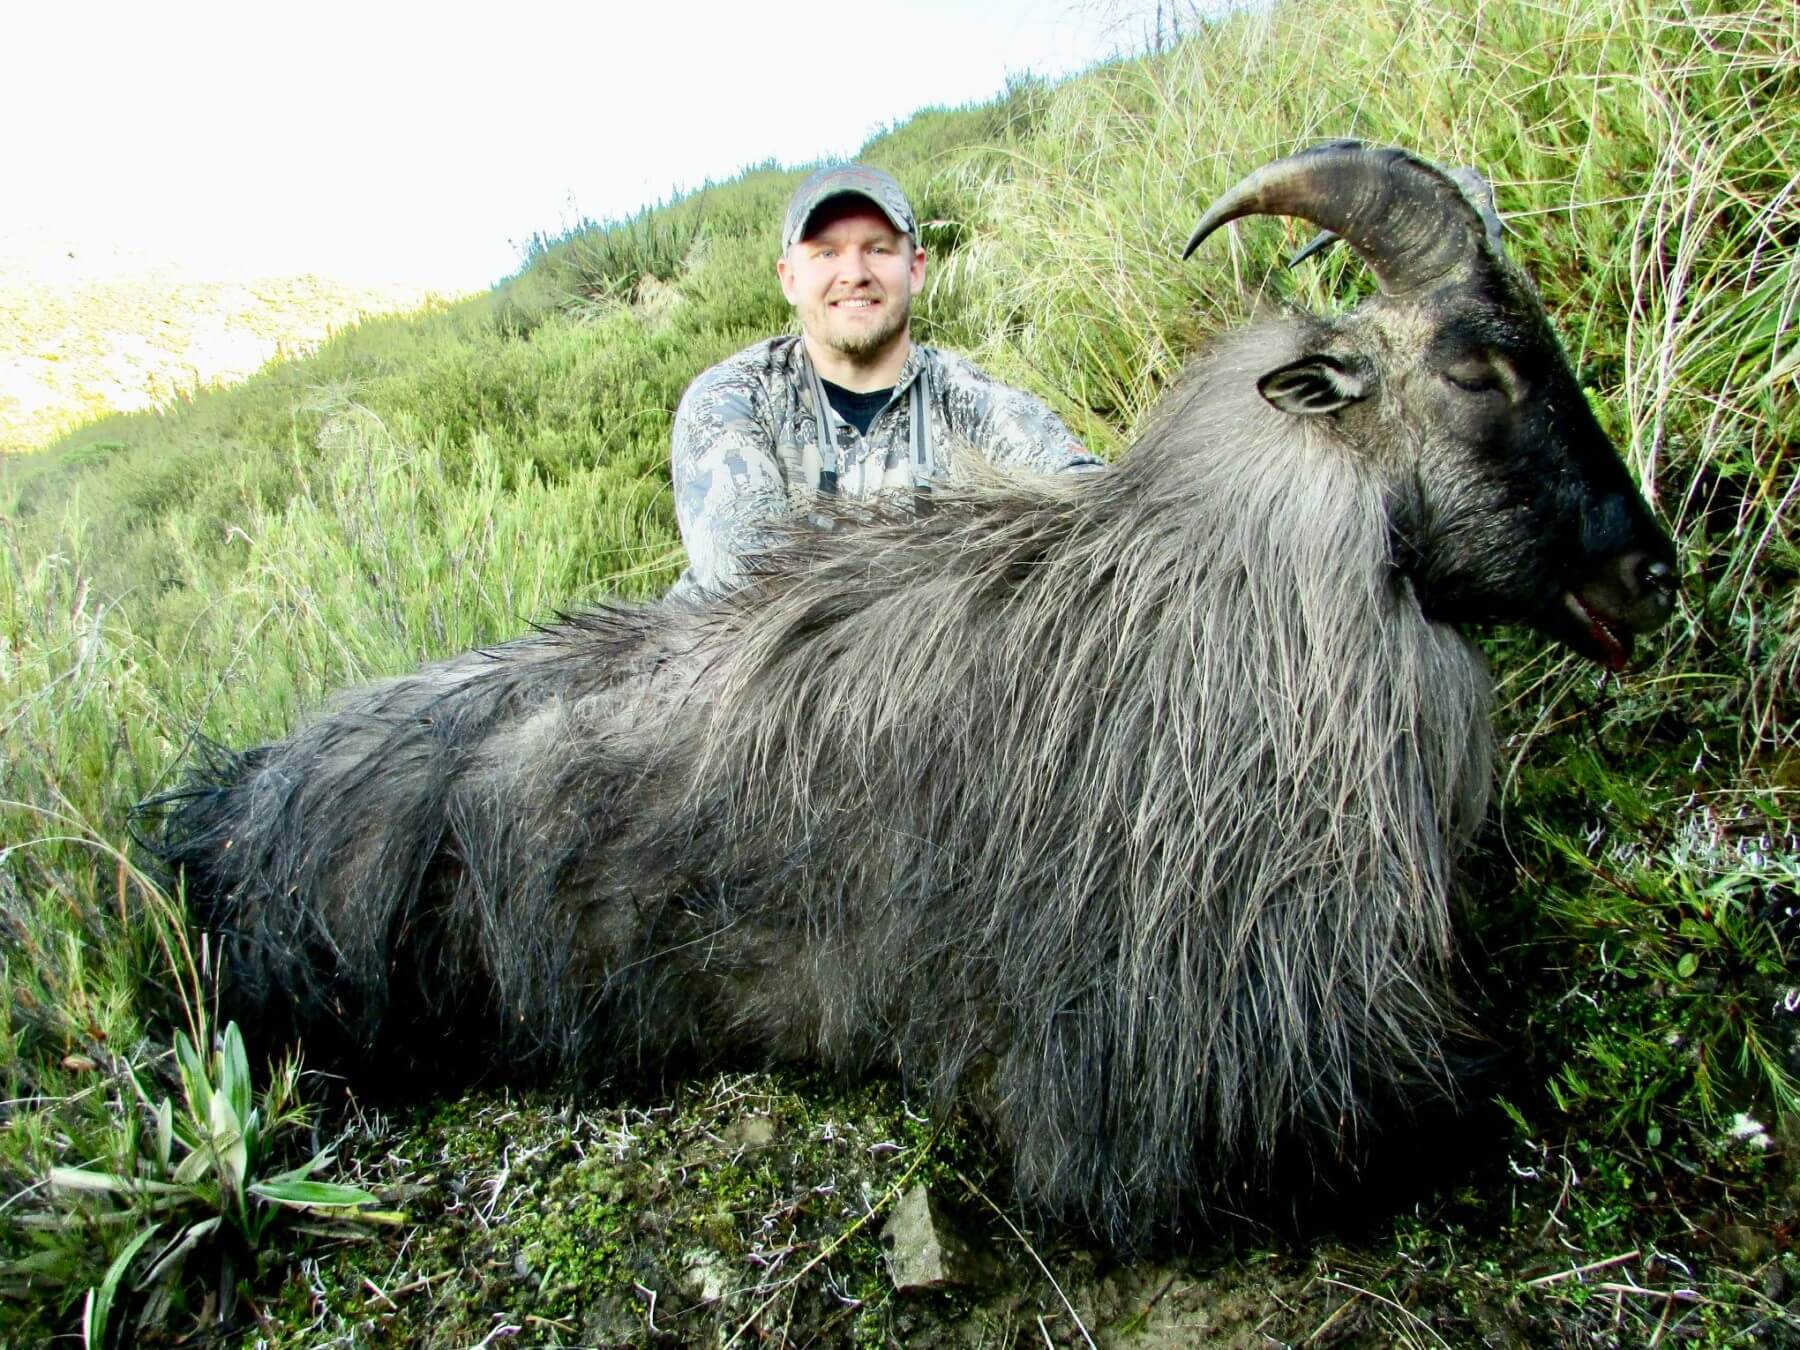 Tahr 6 year old 12.5 inches